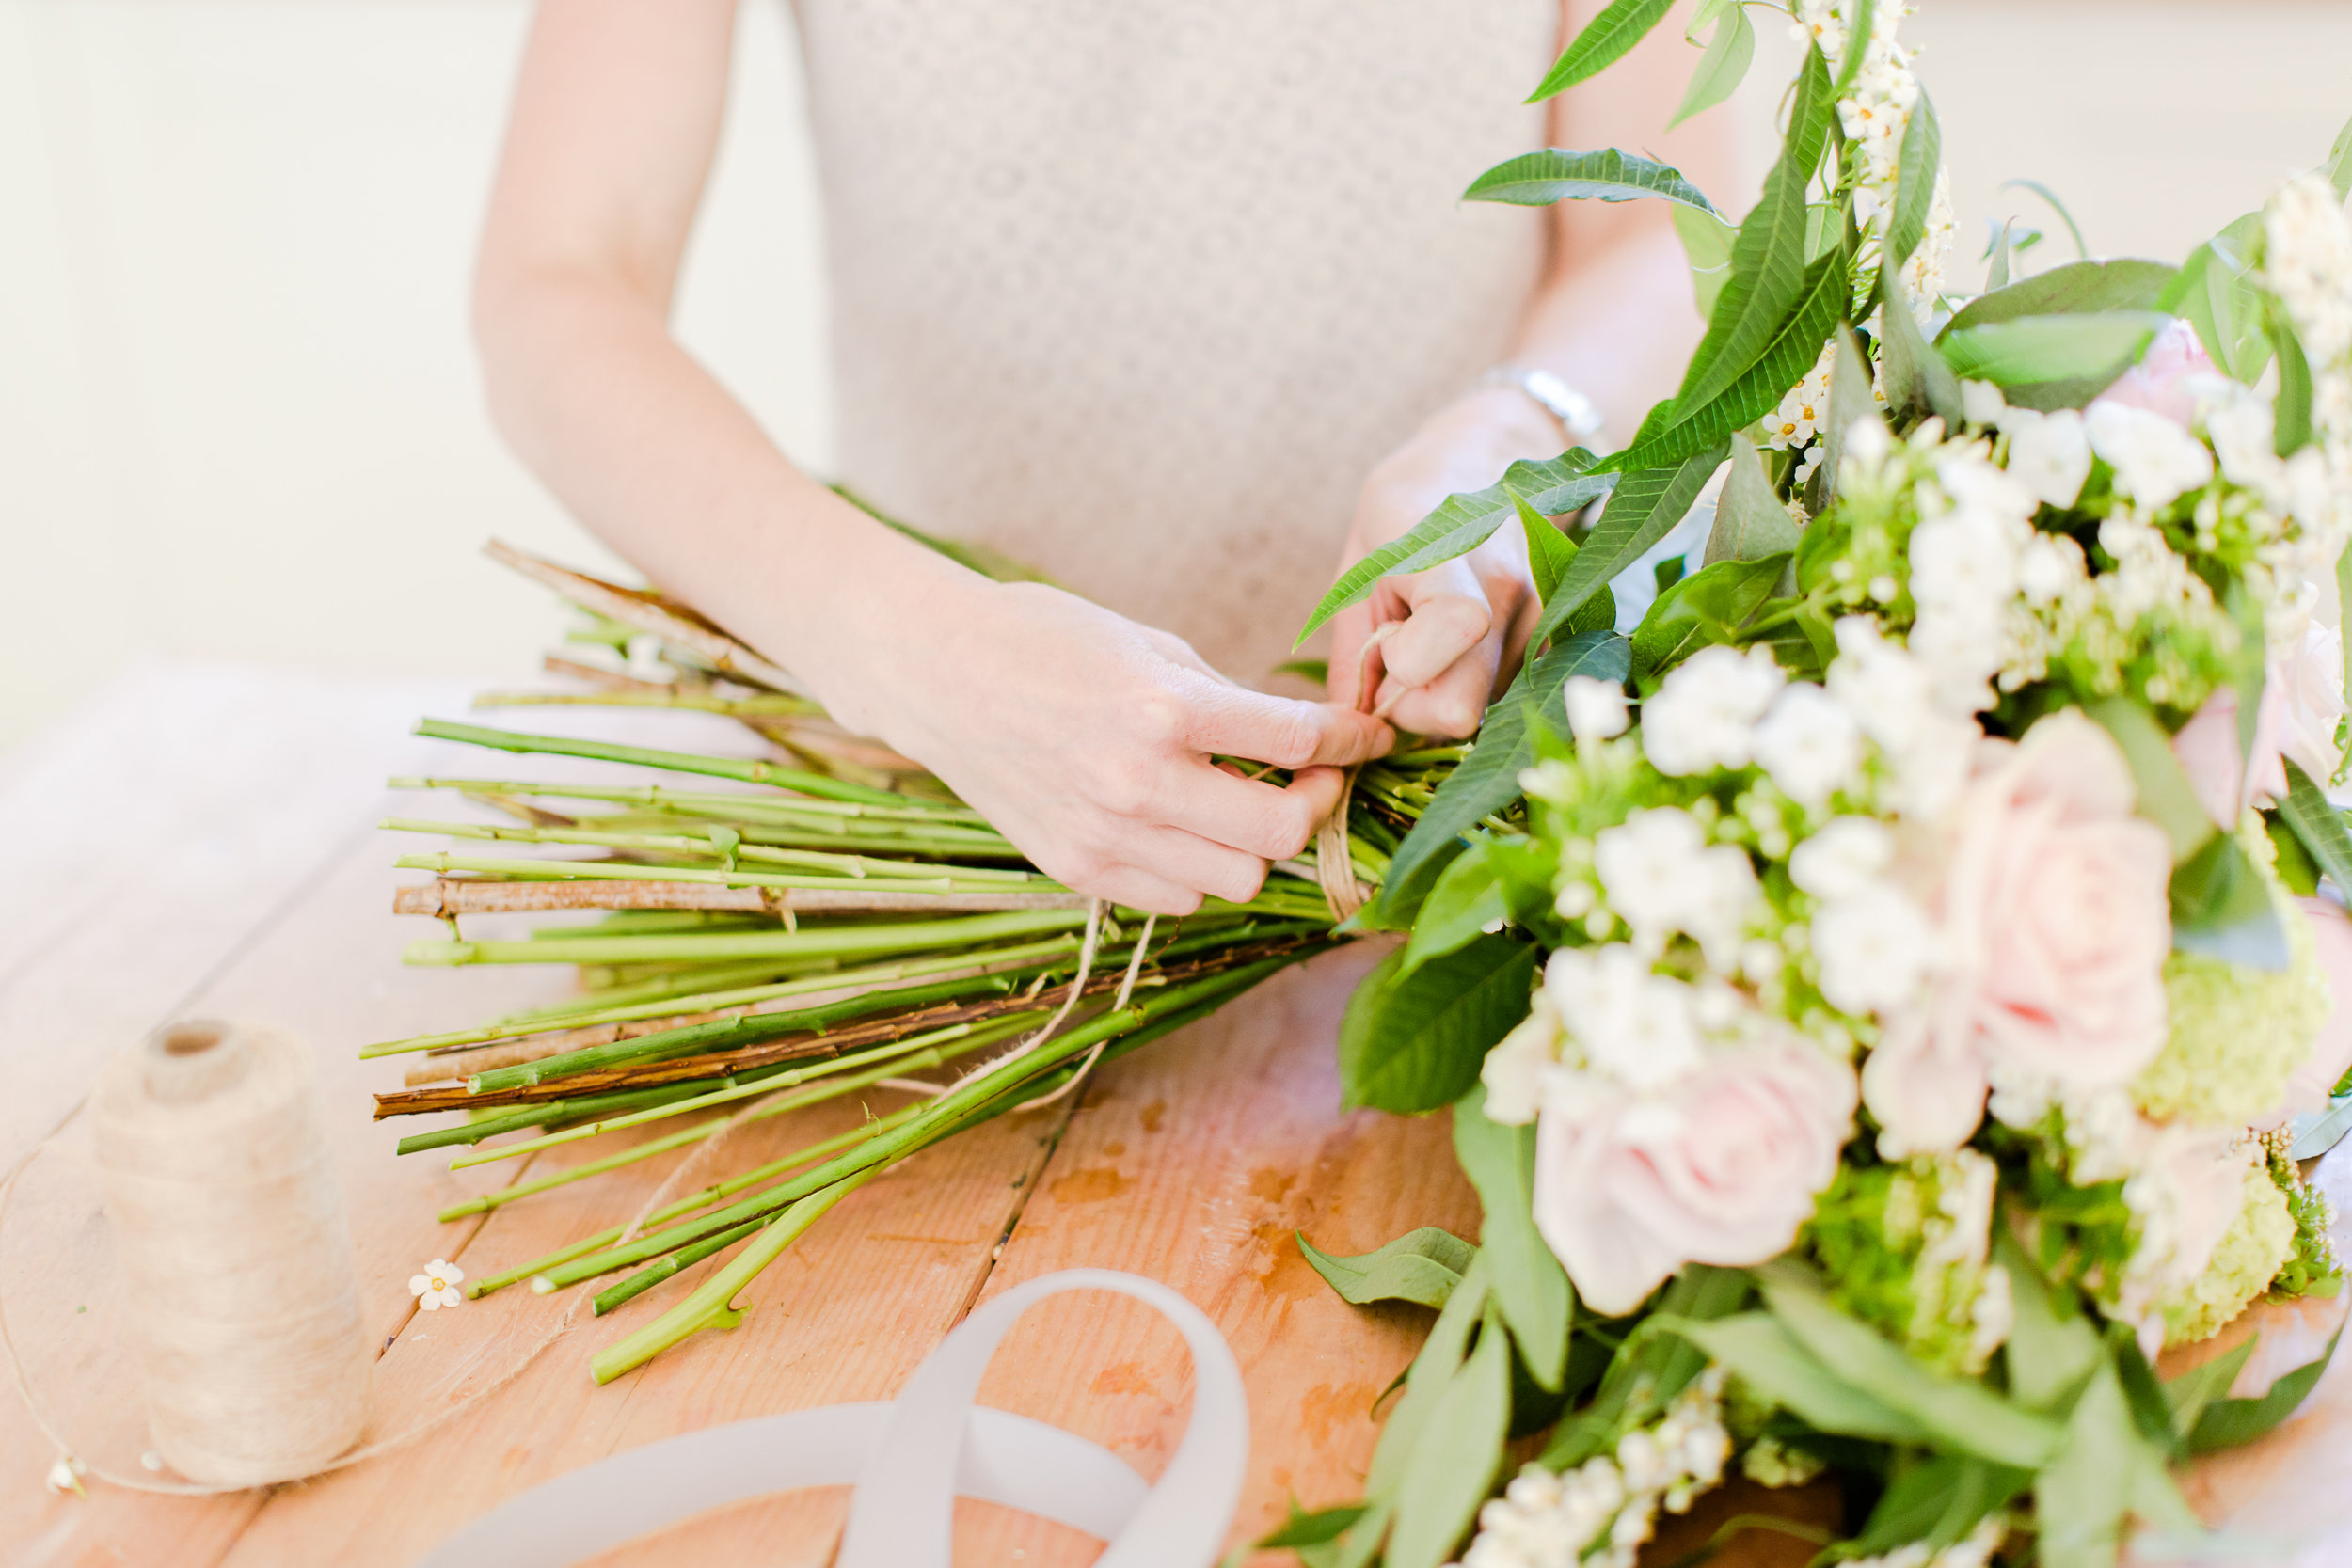 PHILIPPA_CRADDOCK_FLORISTRY_TASTER_WORKSHOP